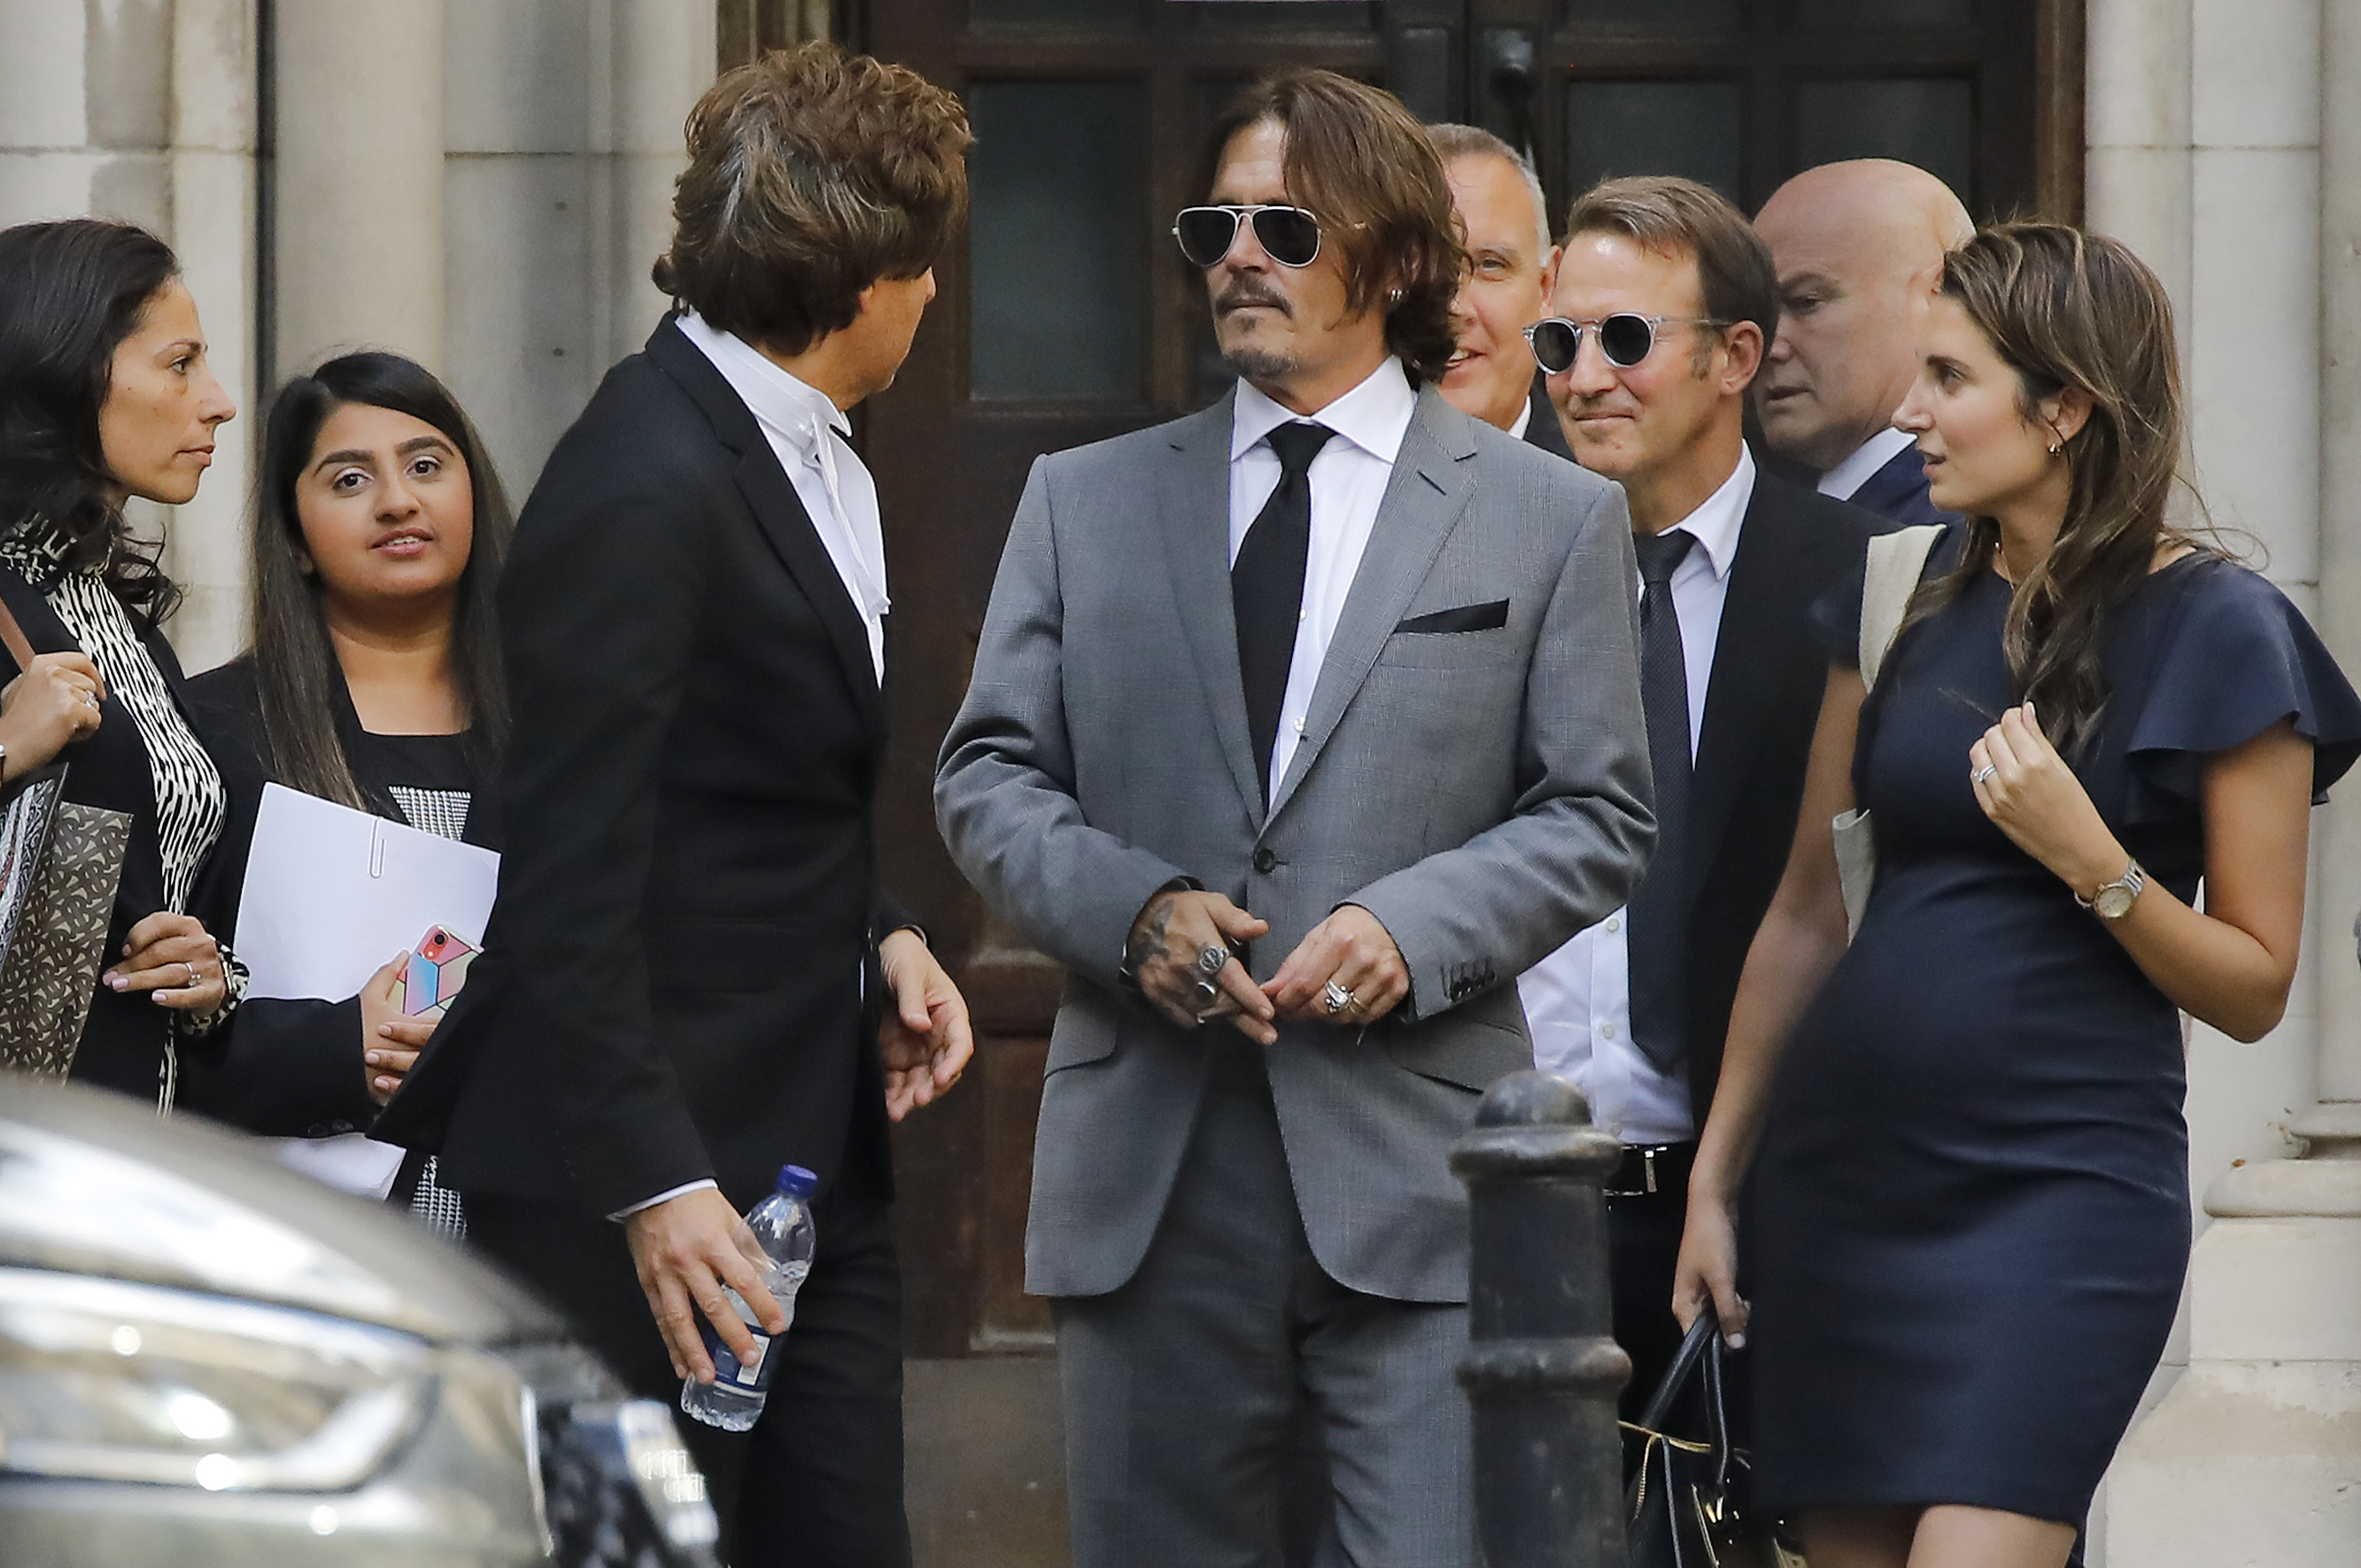 """US actor Johnny Depp (C) leaves after the fifth day of his libel trial against News Group Newspapers (NGN), at the High Court in London, on July 13, 2020. - Depp is suing the publishers of The Sun and the author of the article for the claims that called him a """"wife-beater"""" in April 2018. (Photo by TOLGA AKMEN/AFP via Getty Images)"""